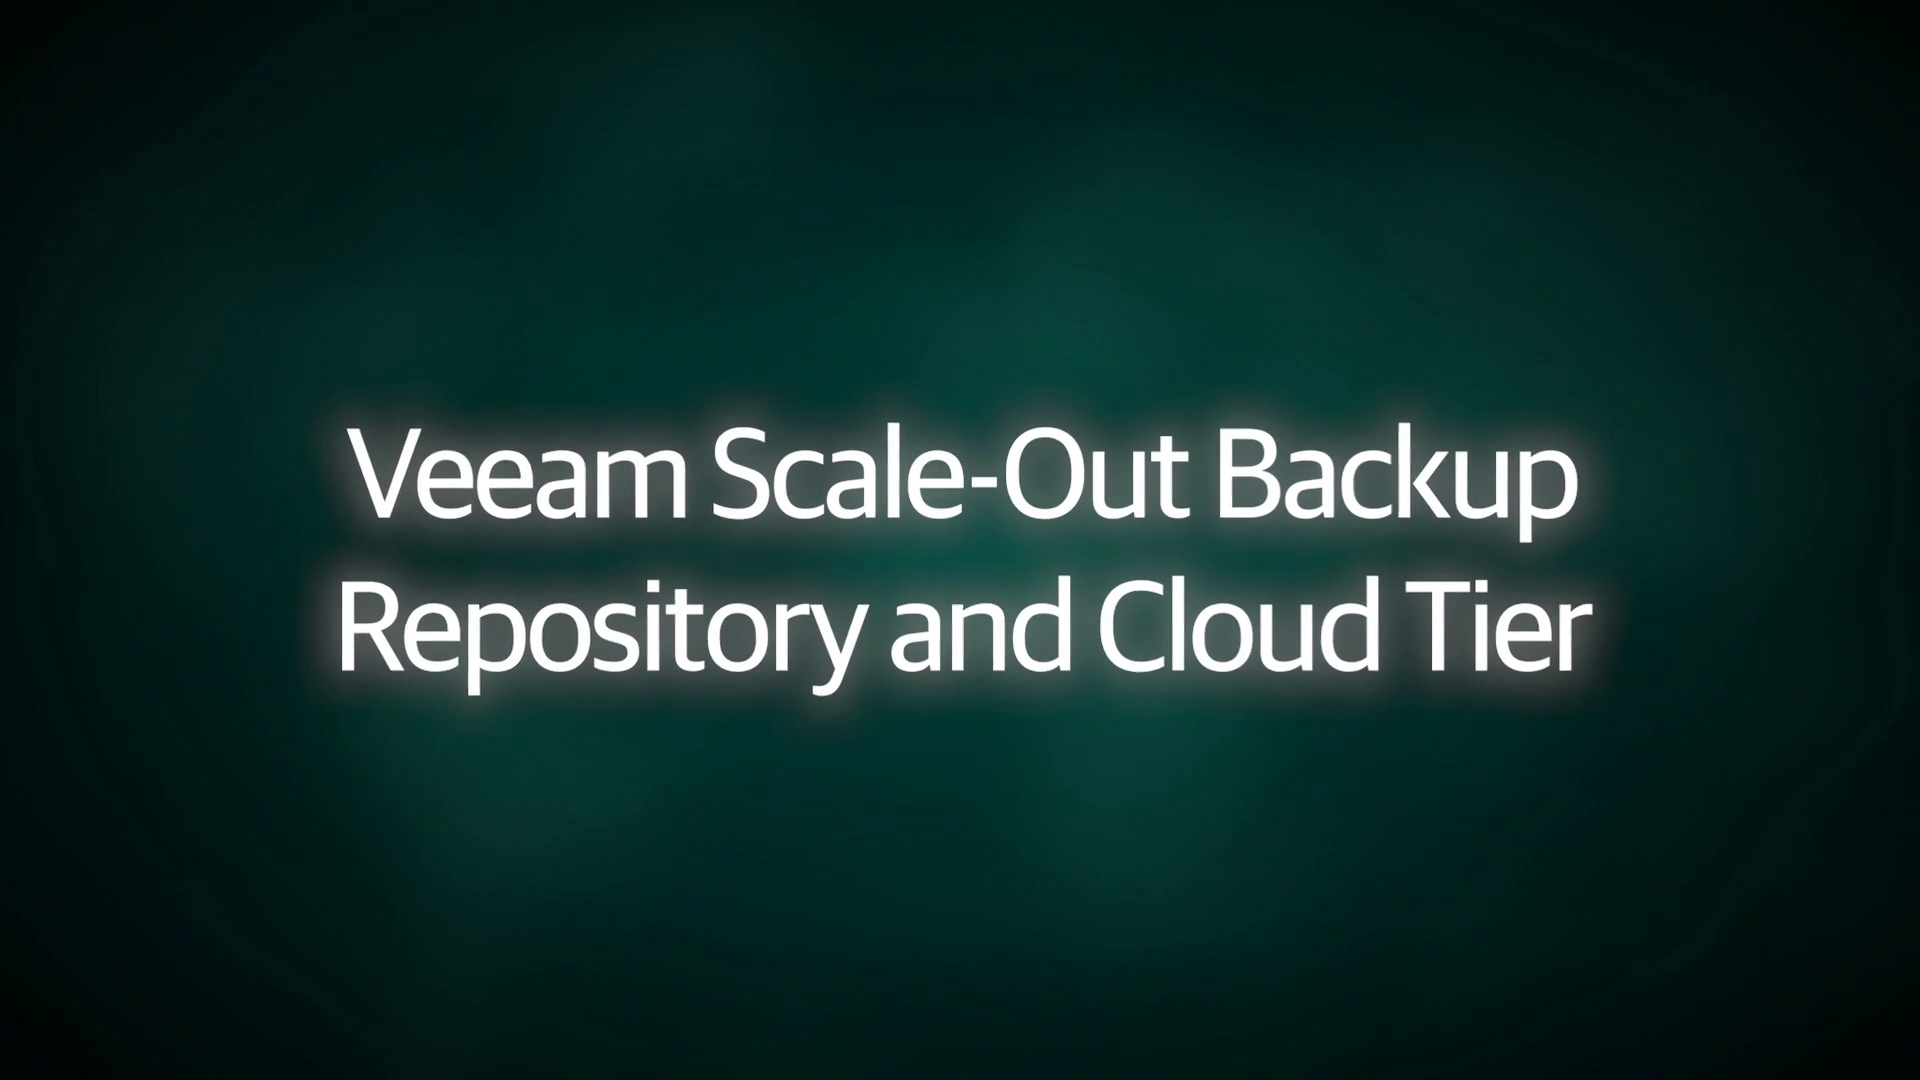 Veeam Scale-Out Backup Repository and Cloud Tier